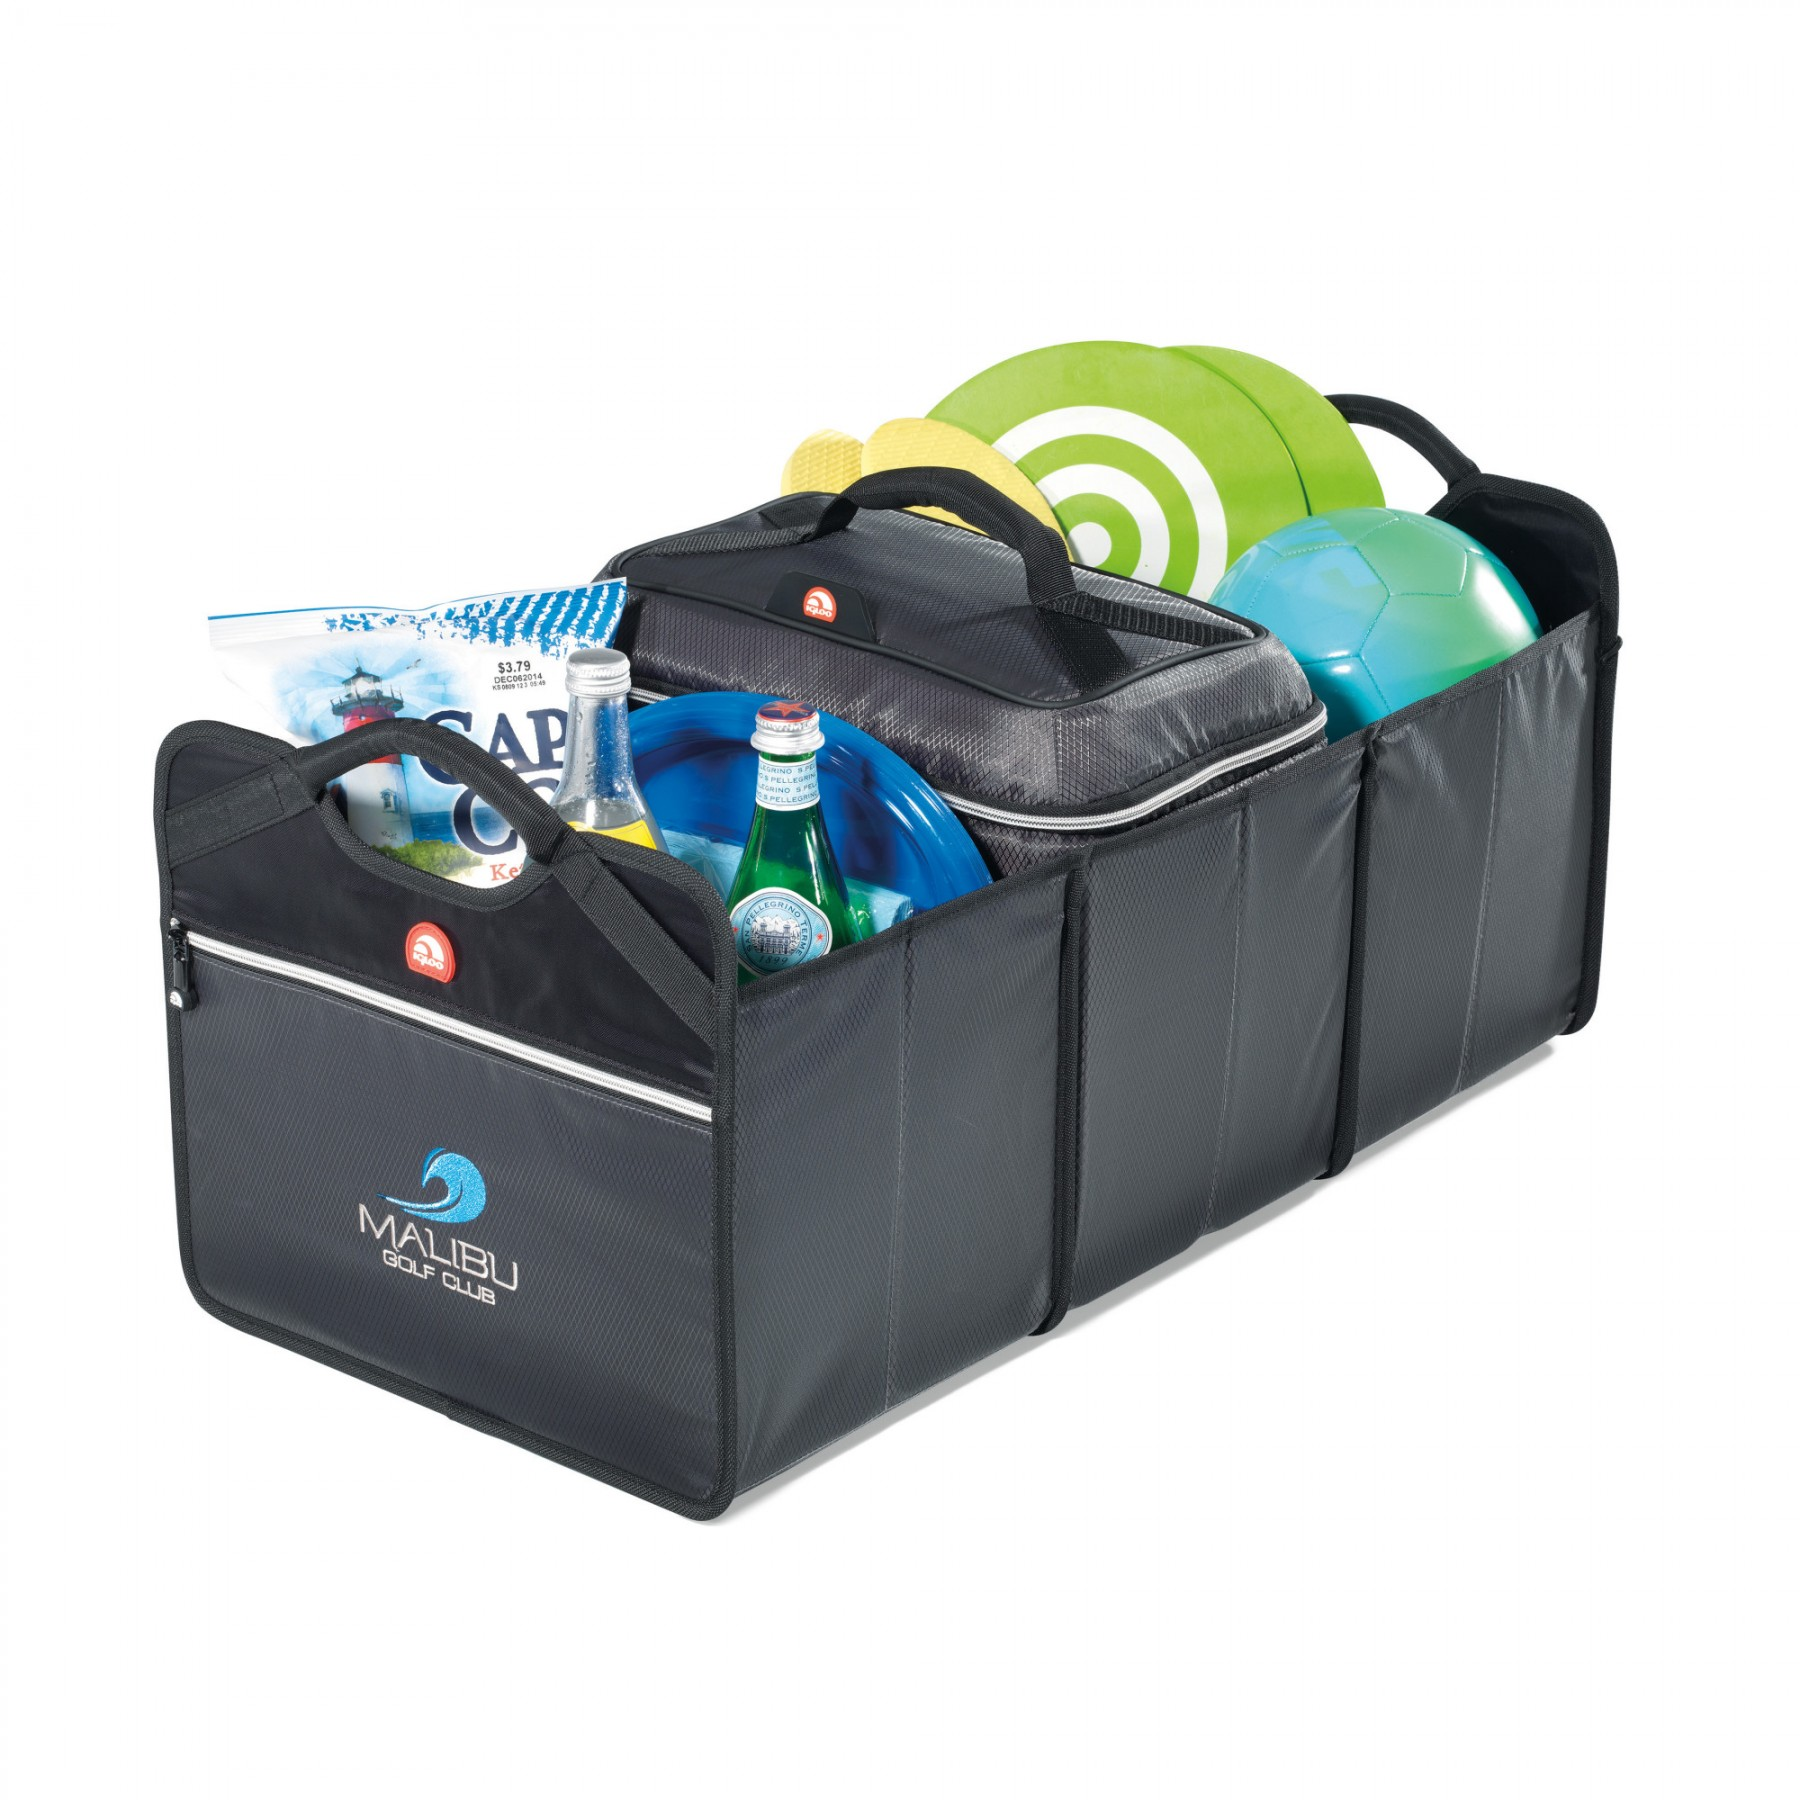 Igloo Cargo Box with Cooler